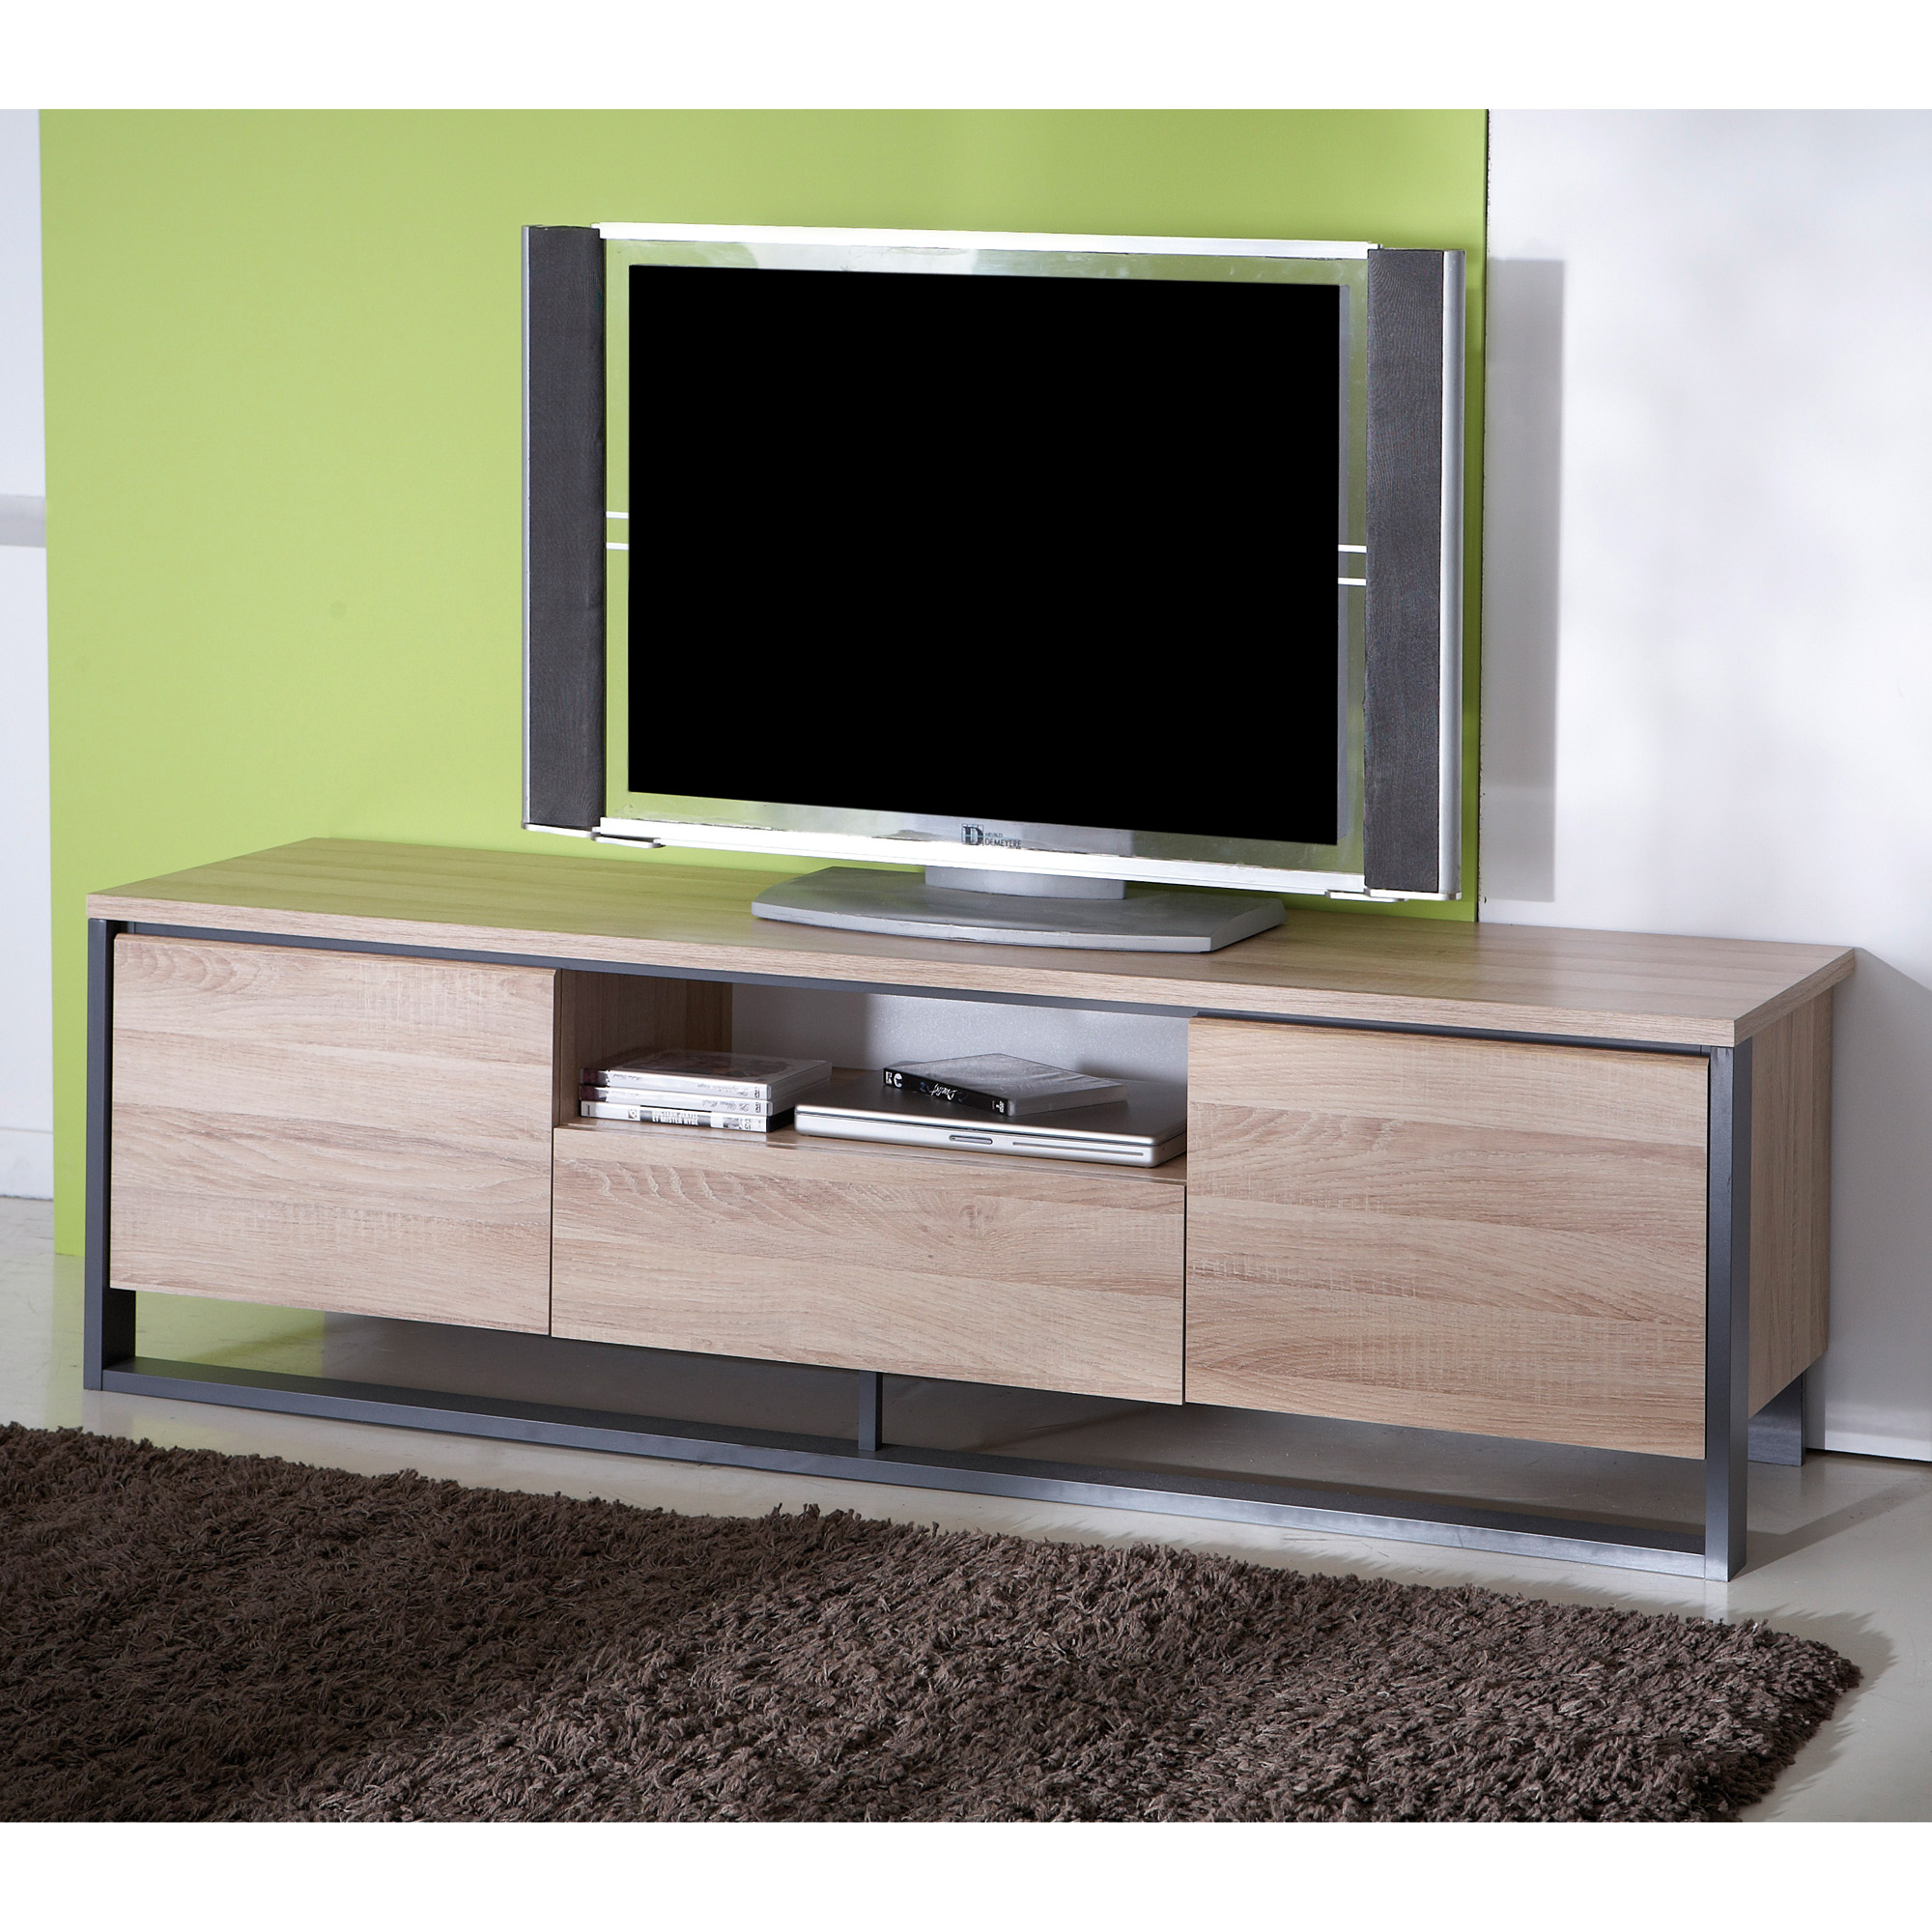 meuble tv qui ferme mobilier design d coration d 39 int rieur. Black Bedroom Furniture Sets. Home Design Ideas